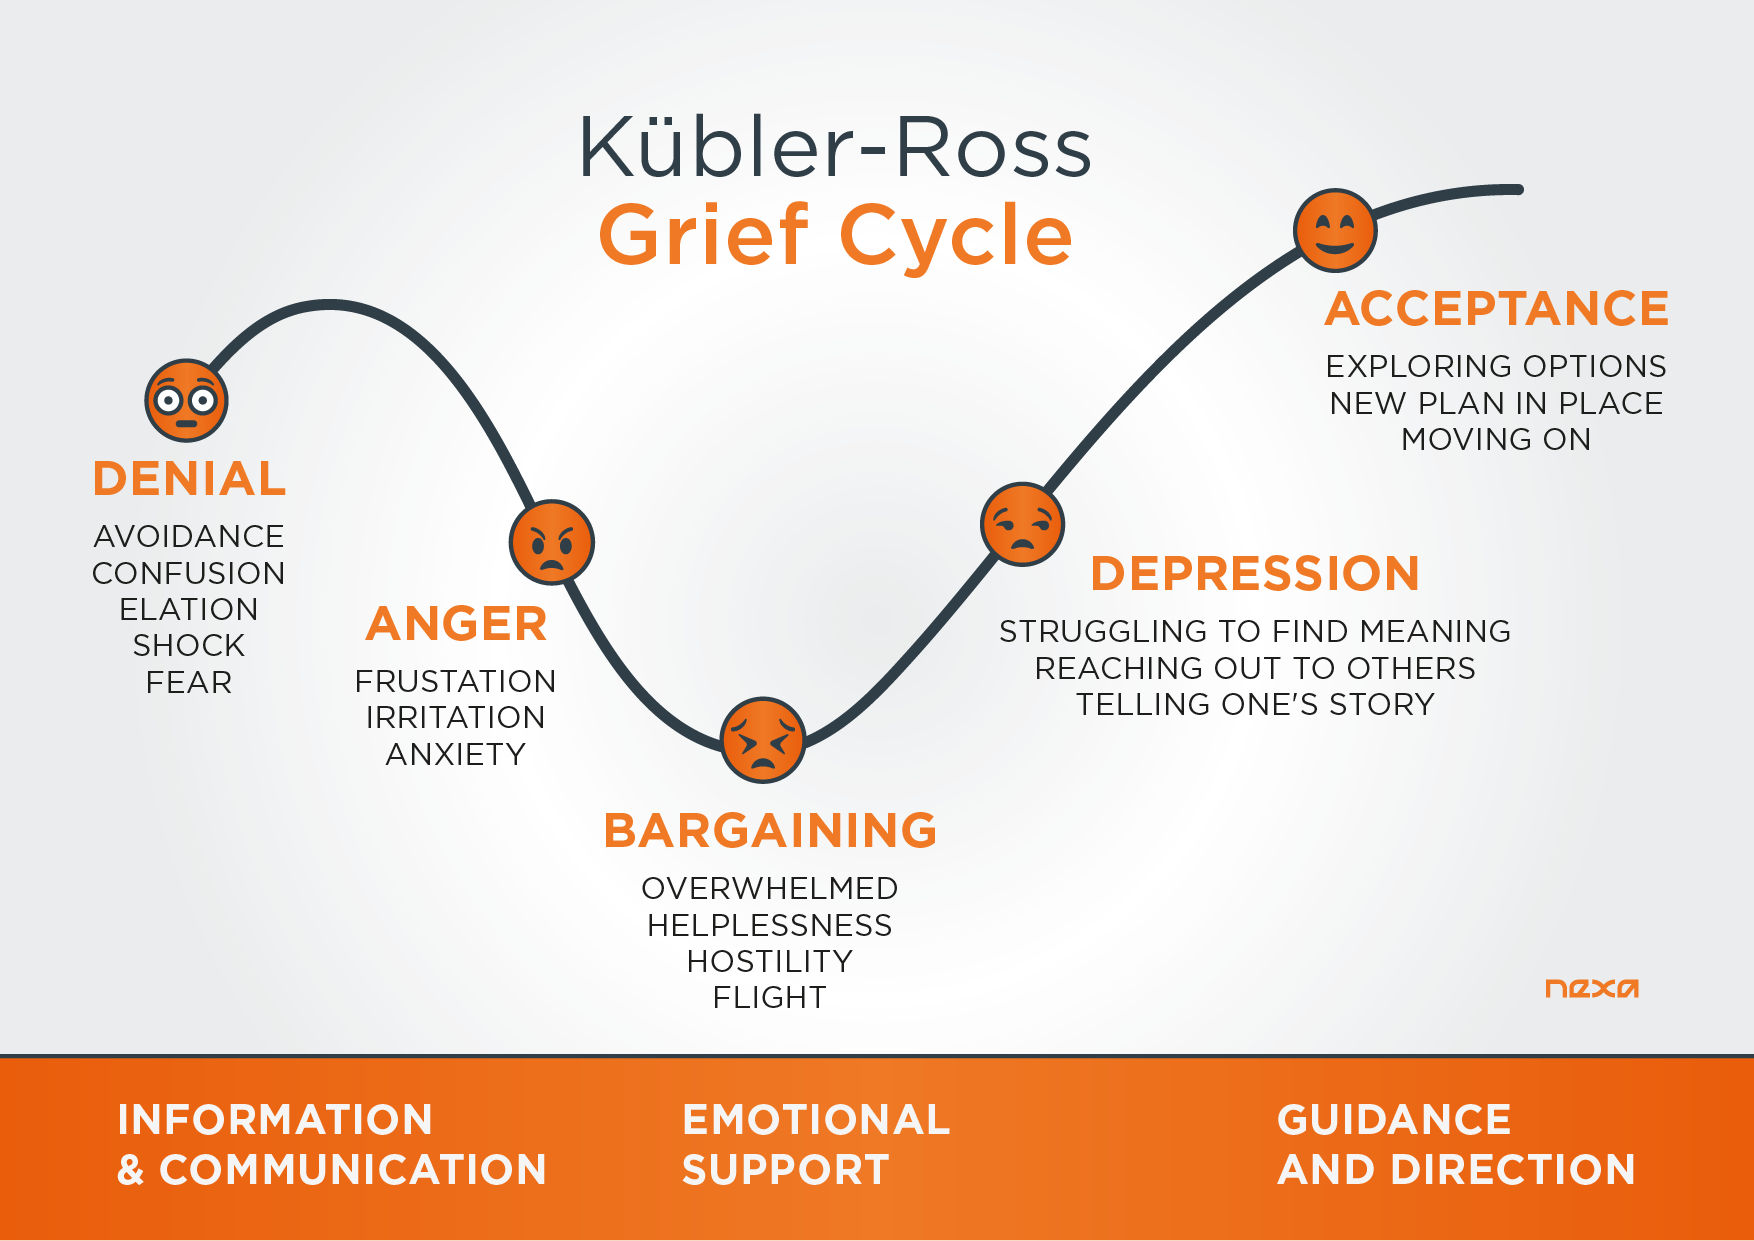 The Kübler-Ross Grief Cycle by Nexa